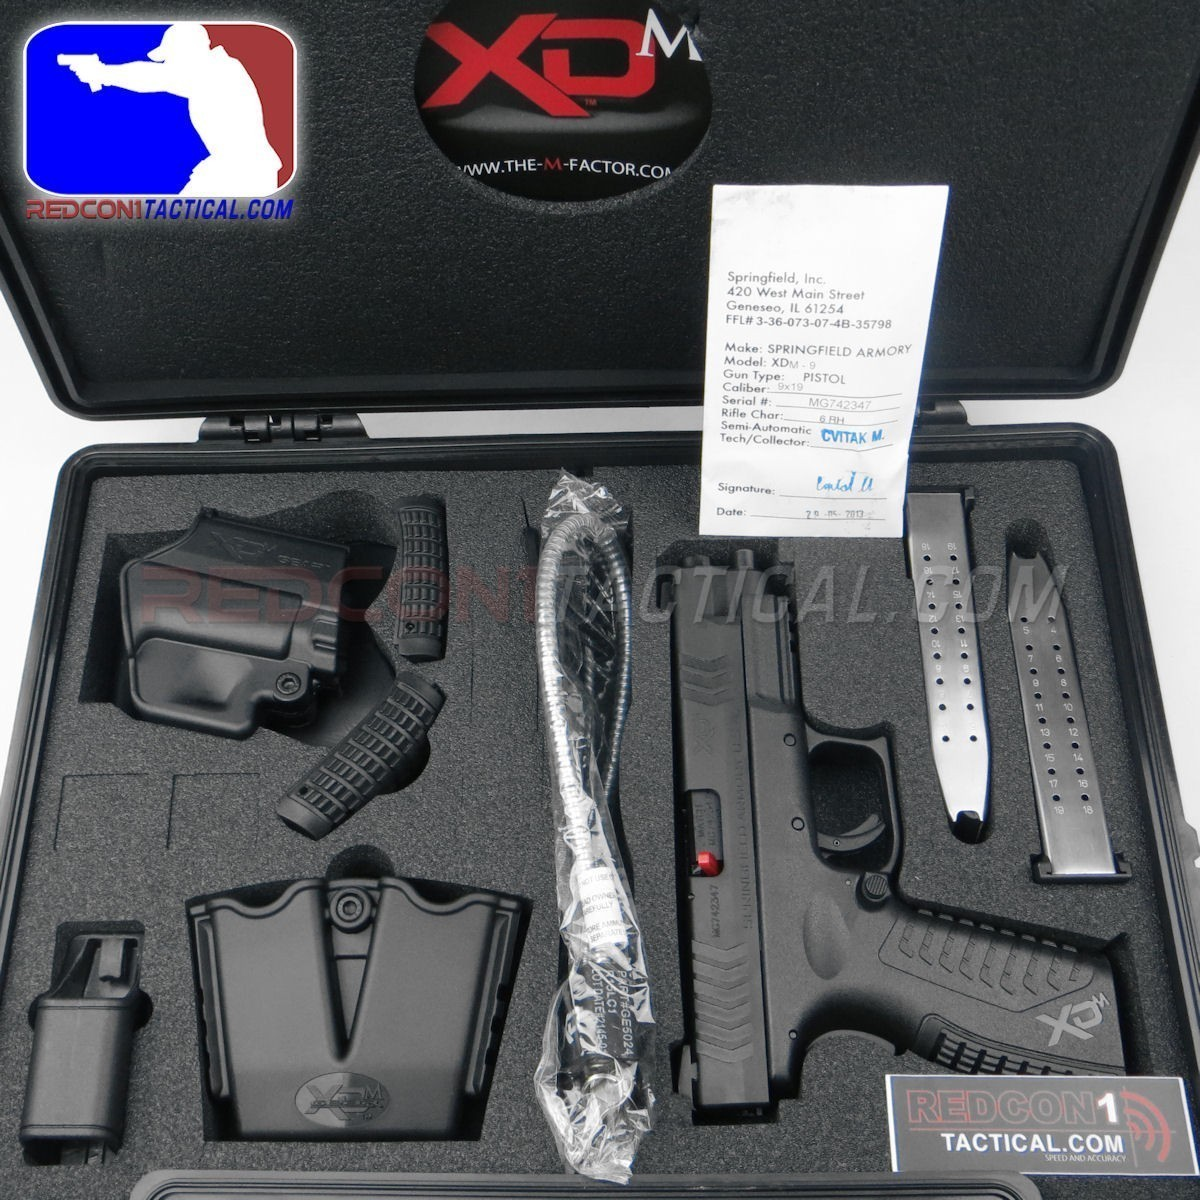 Xdm Tactical 9mm Springfield Xdm 9mm 4.5